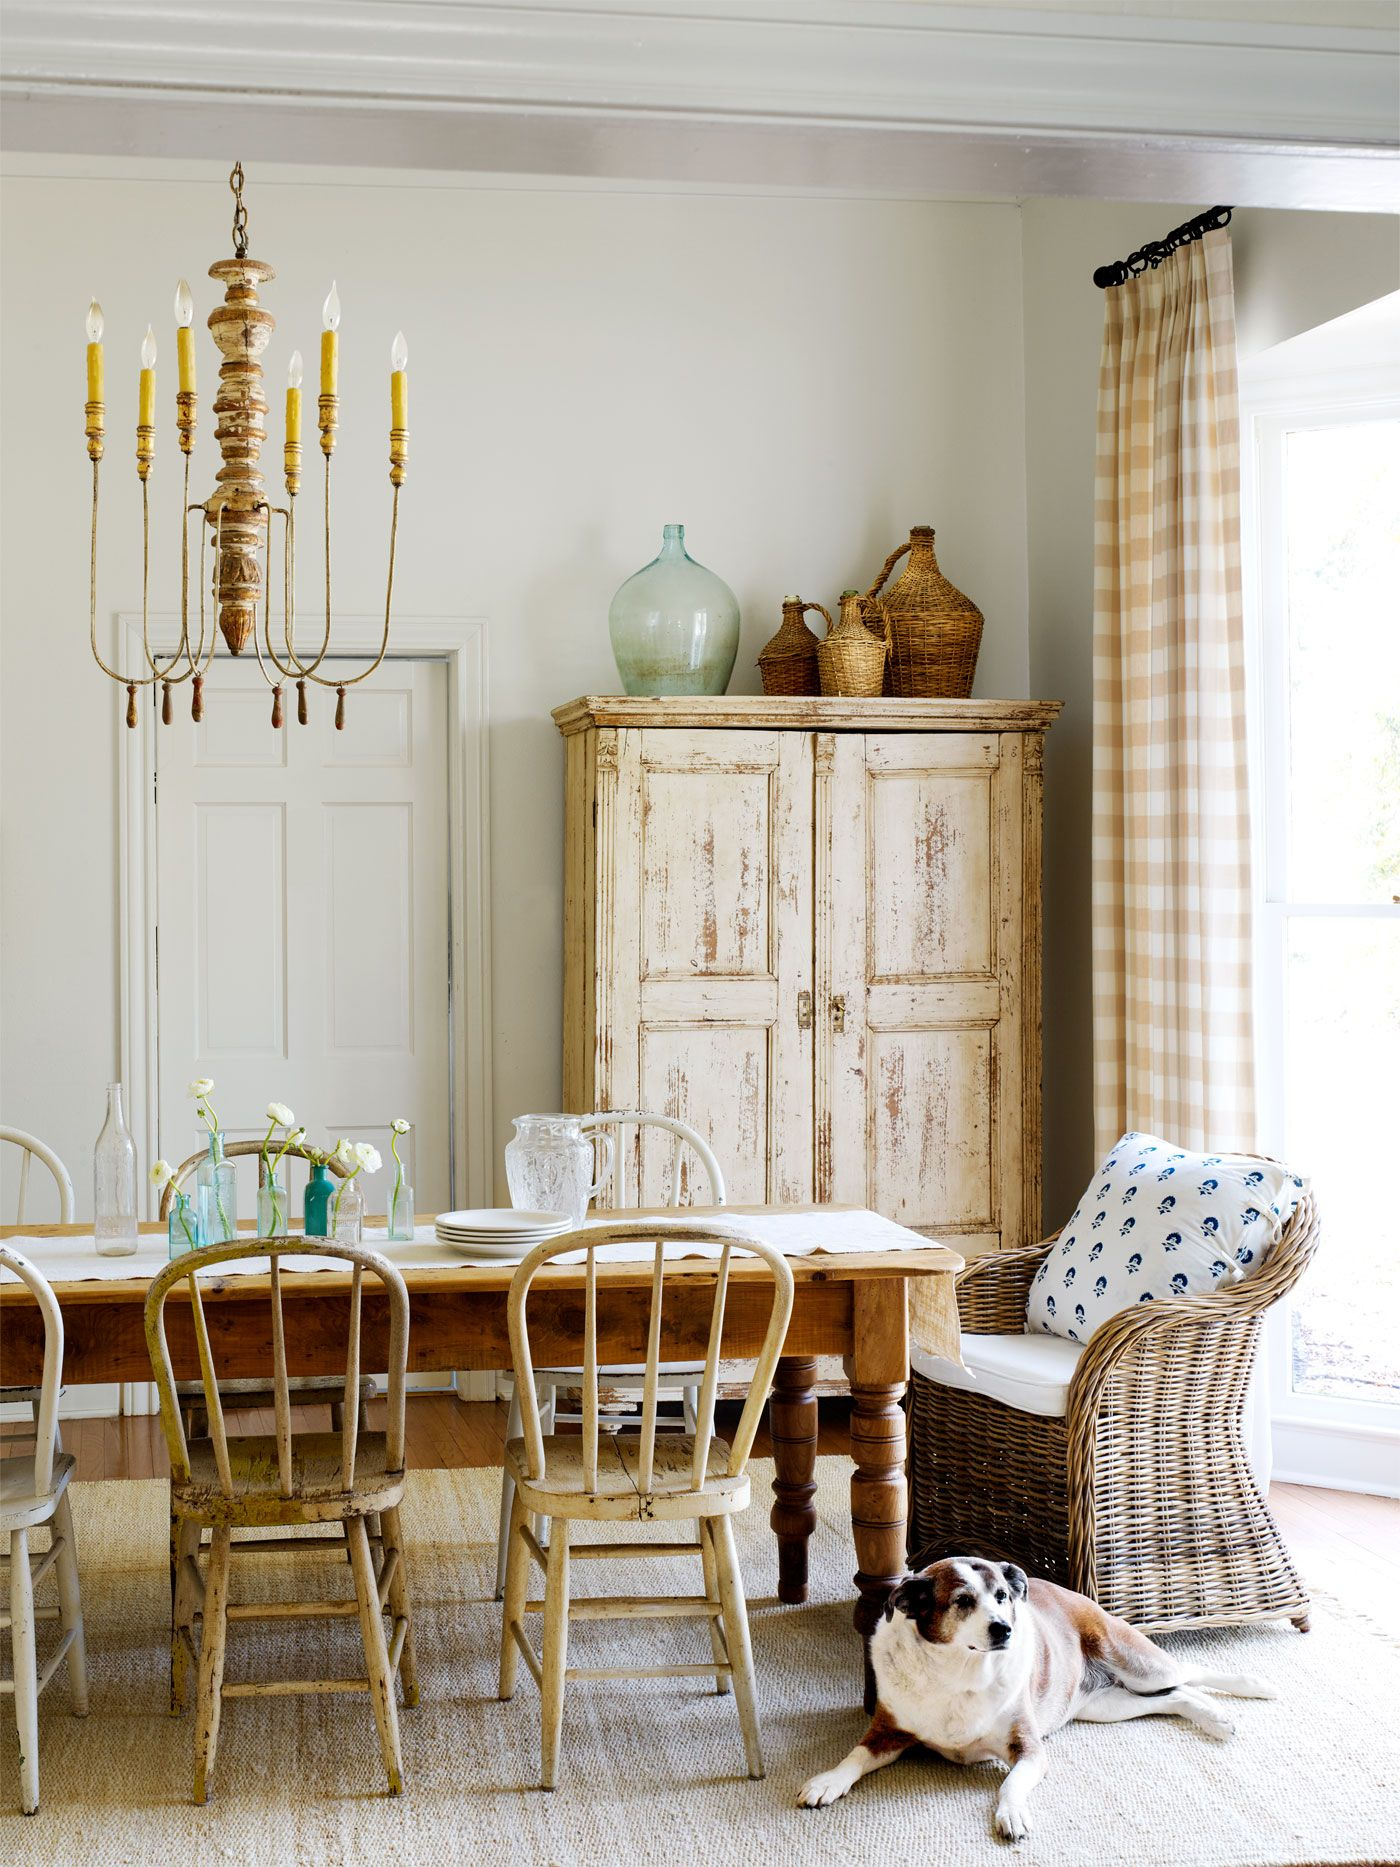 A Straight From The Store Dining Set Would Feel Far Too Formal For  Christiu0027s Down Home Style. Instead, She Purchased A Rough Hewn Farm Table,  Then Collected ...